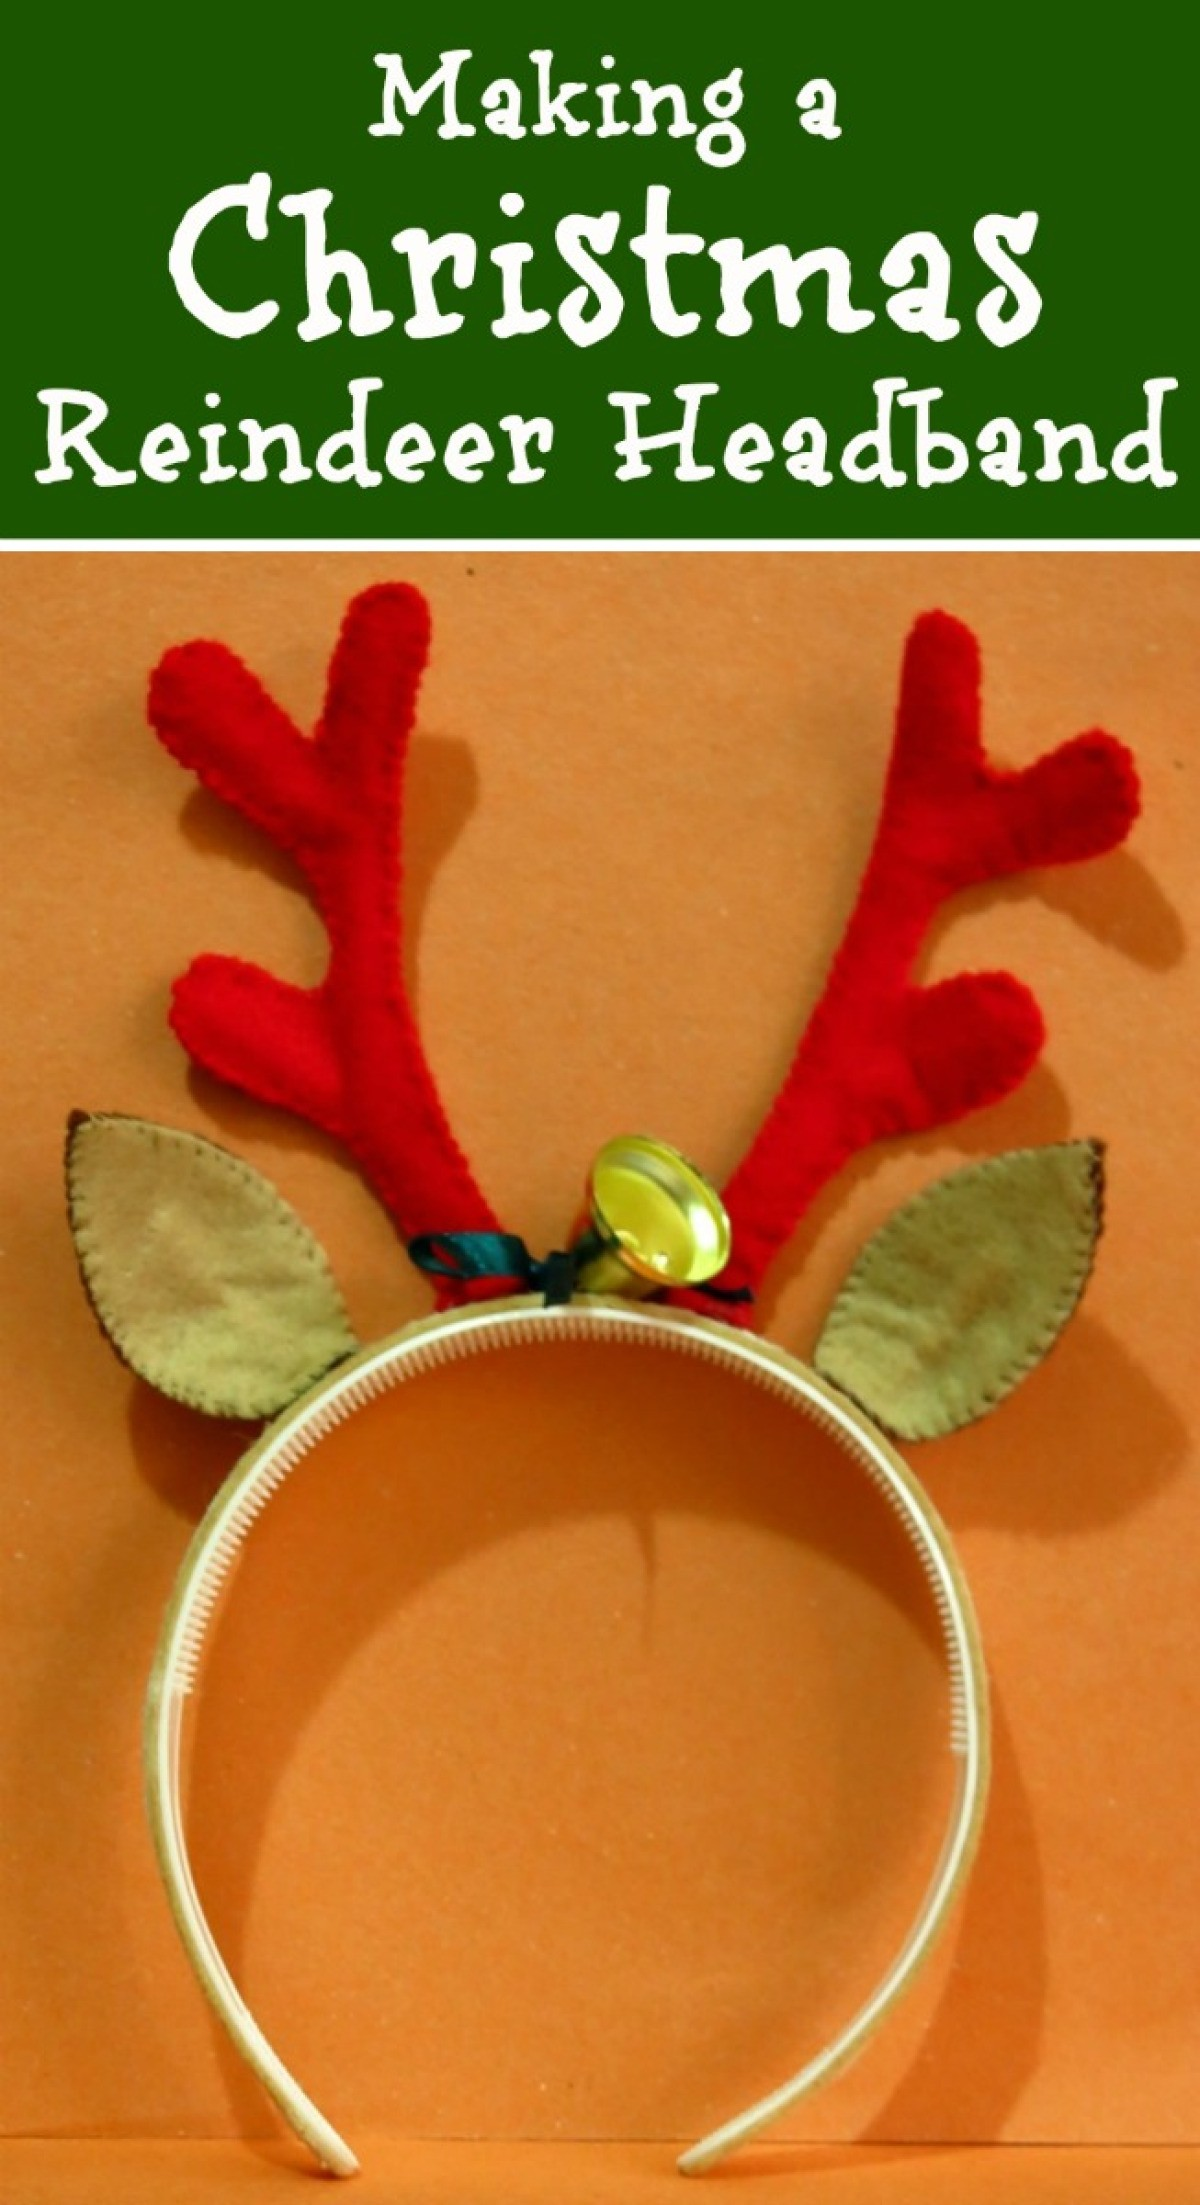 Christmas Headband Craft.Making A Christmas Reindeer Headband Thriftyfun